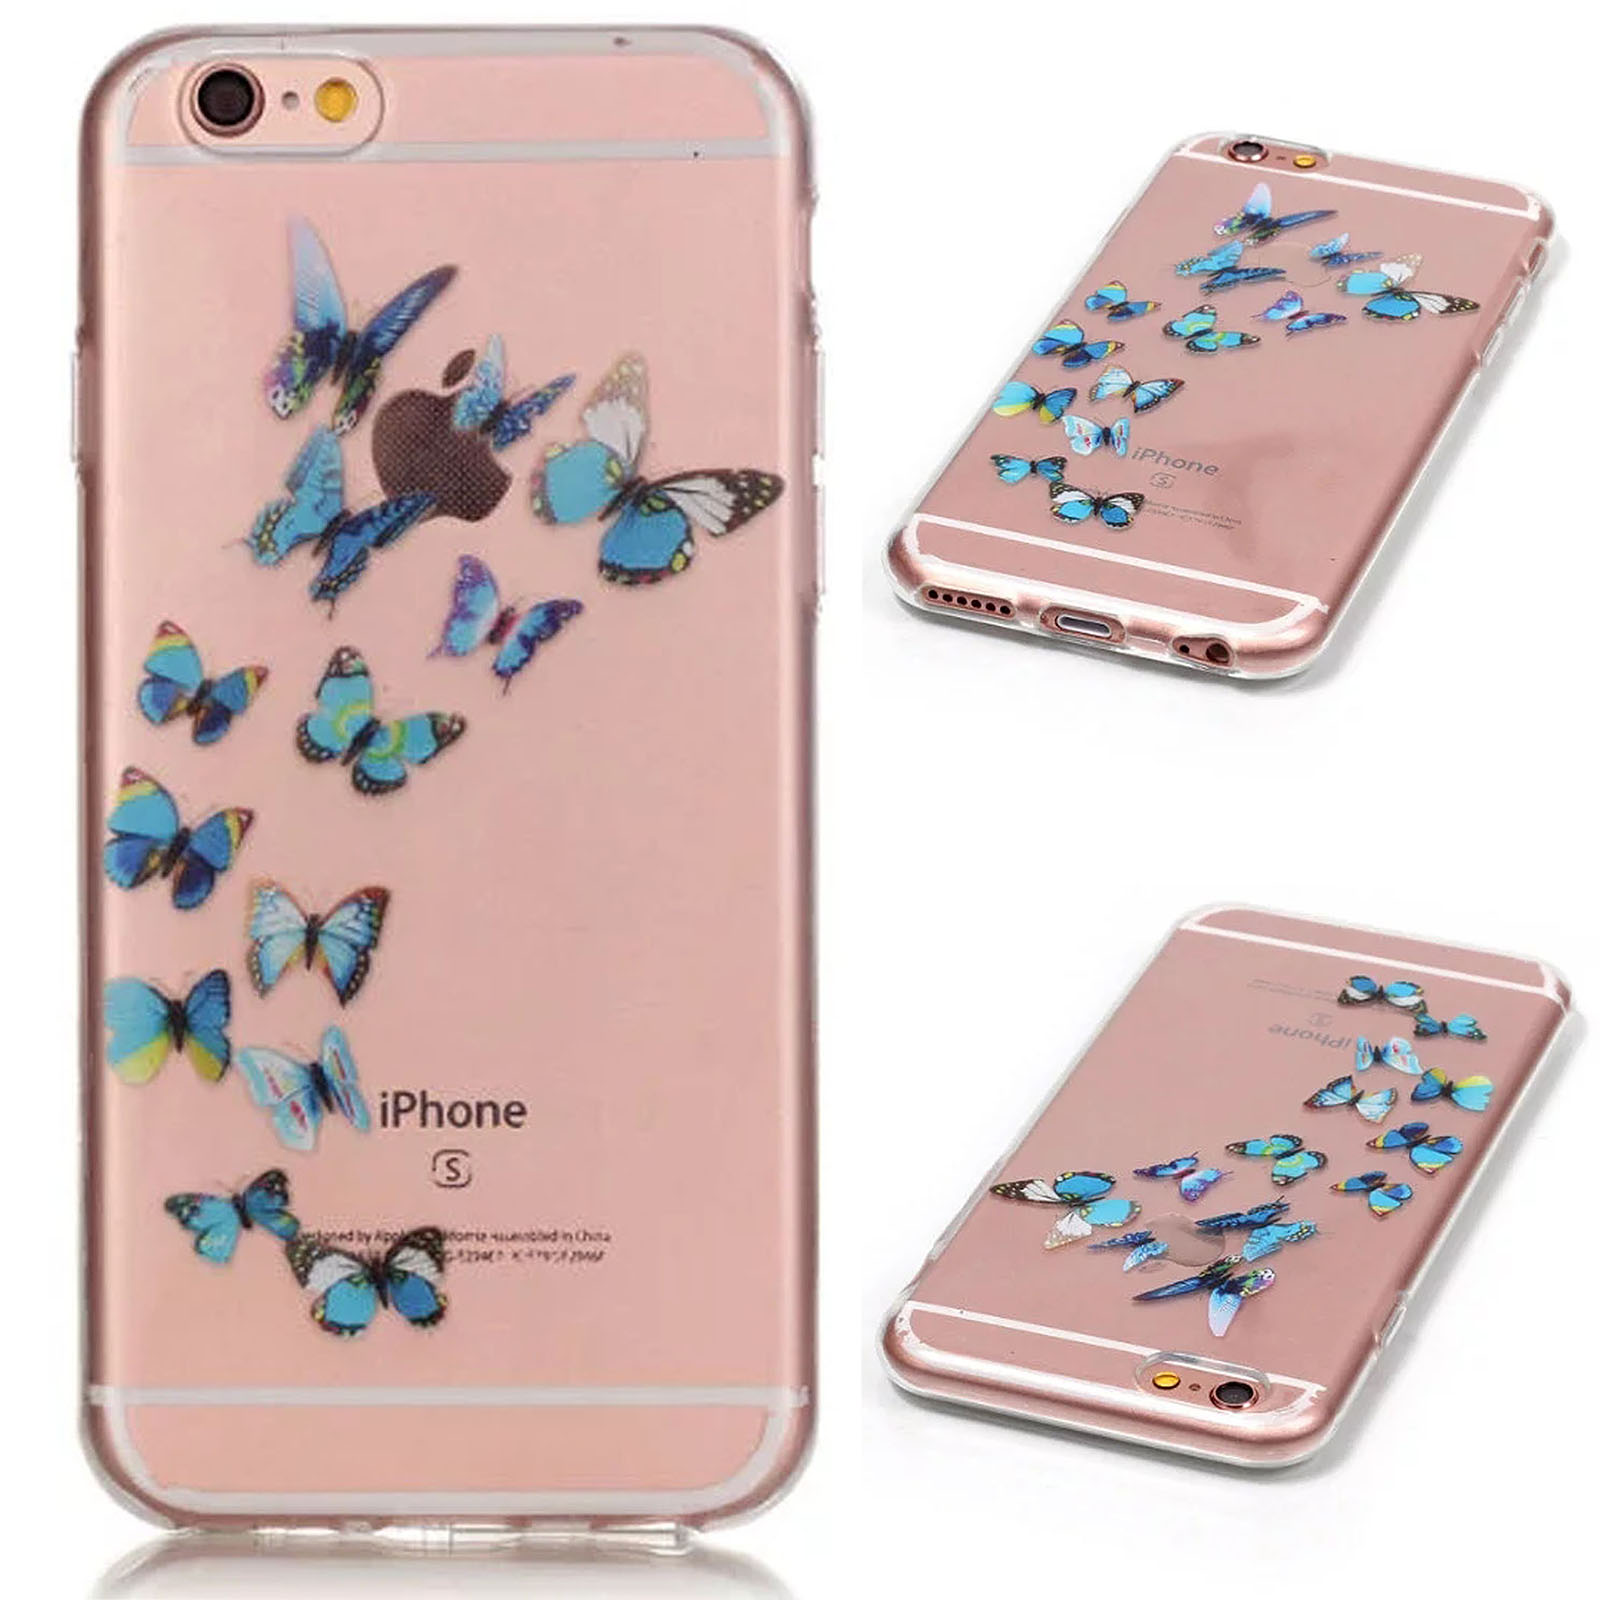 Iphone Gs Silicone Cases